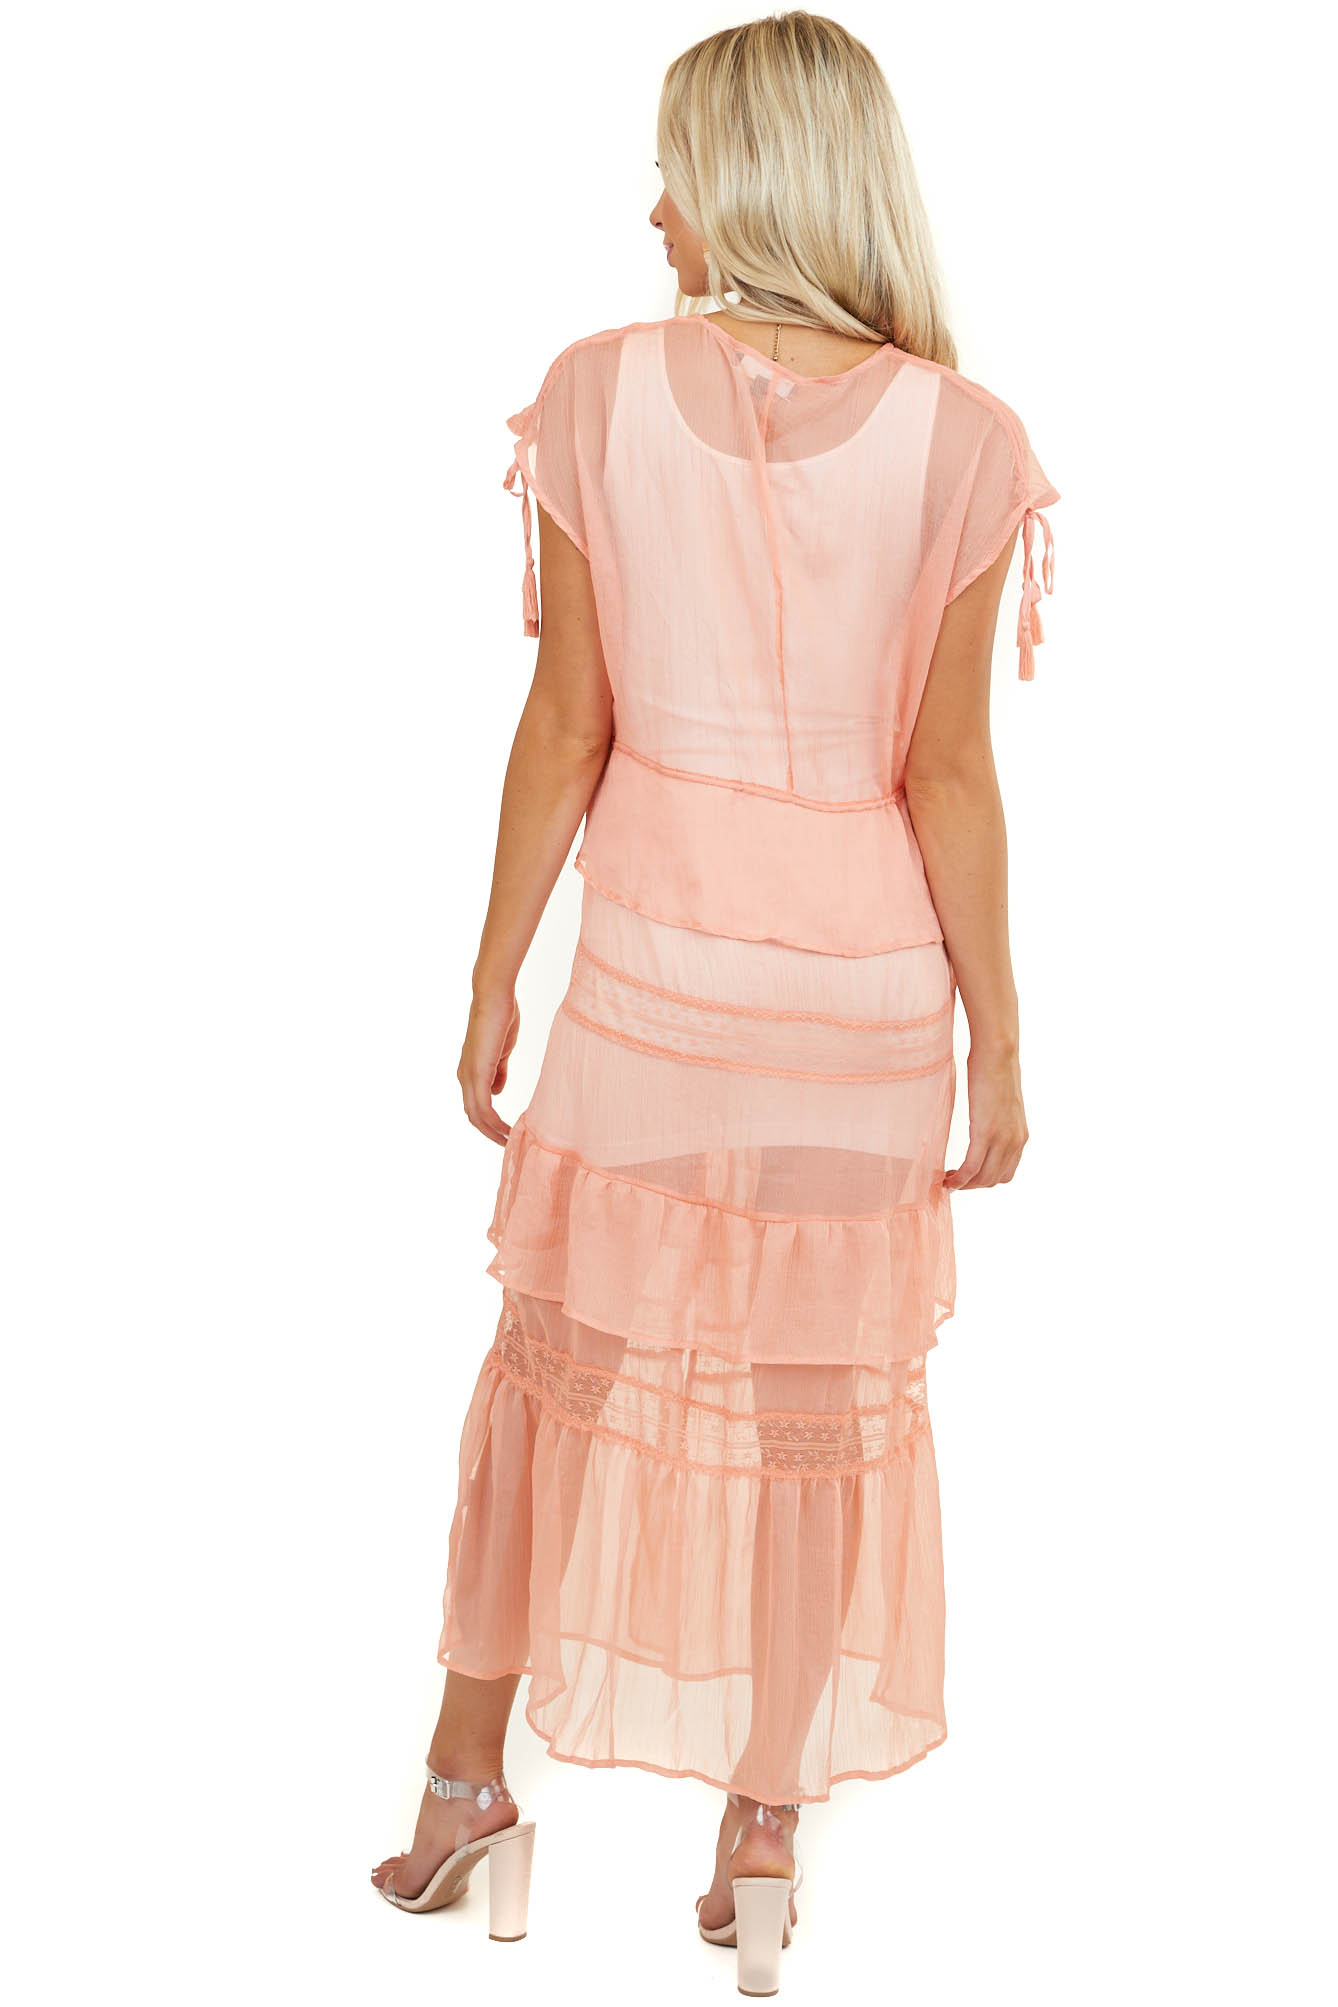 Salmon Ruffled Kimono Vest with Lace Details and Waist Tie